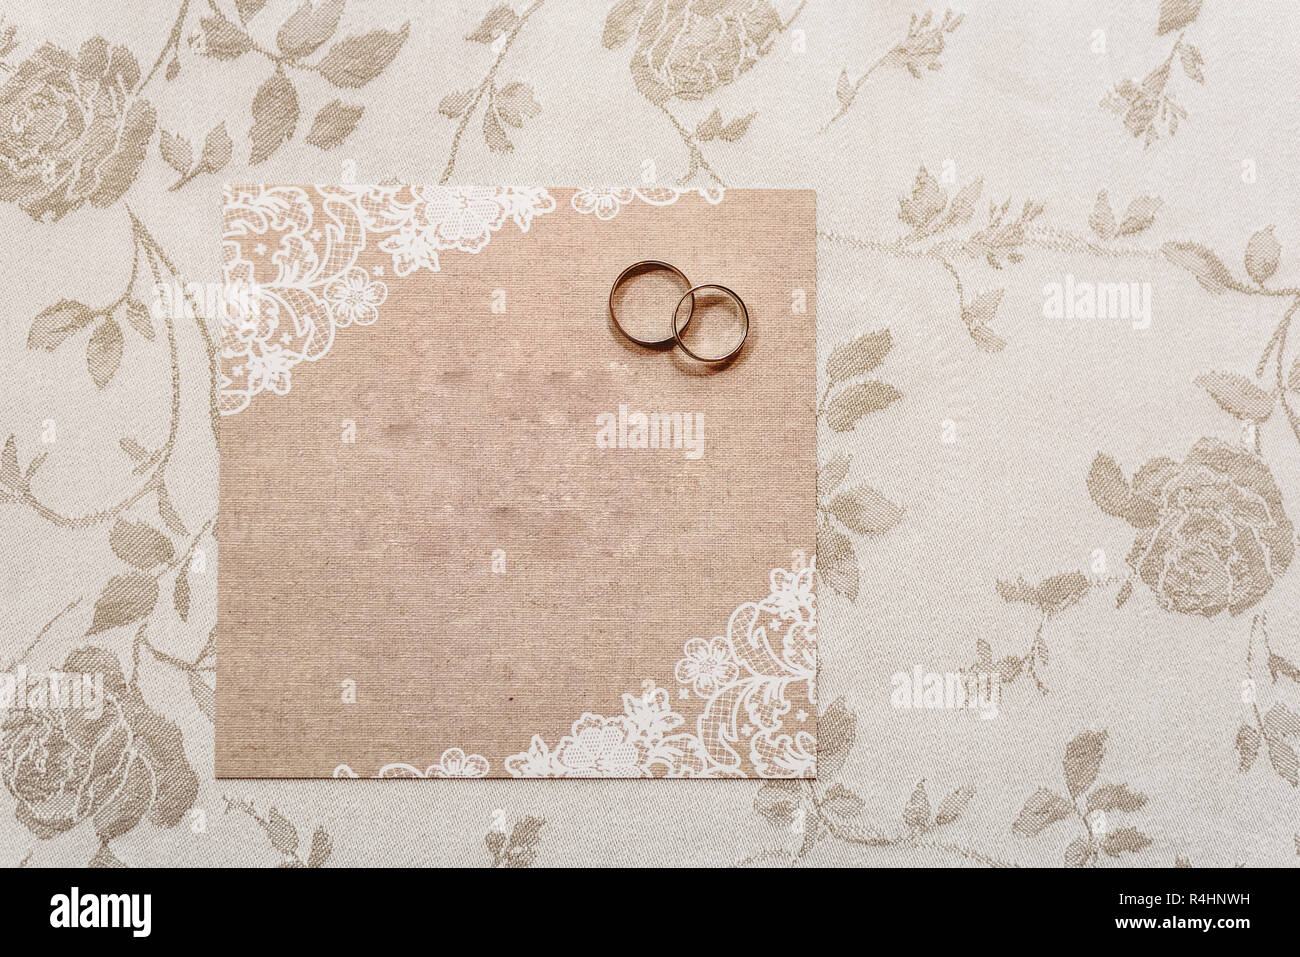 Wedding Invitation Card With Rings Empty With Space To Fill With Text Stock Photo Alamy